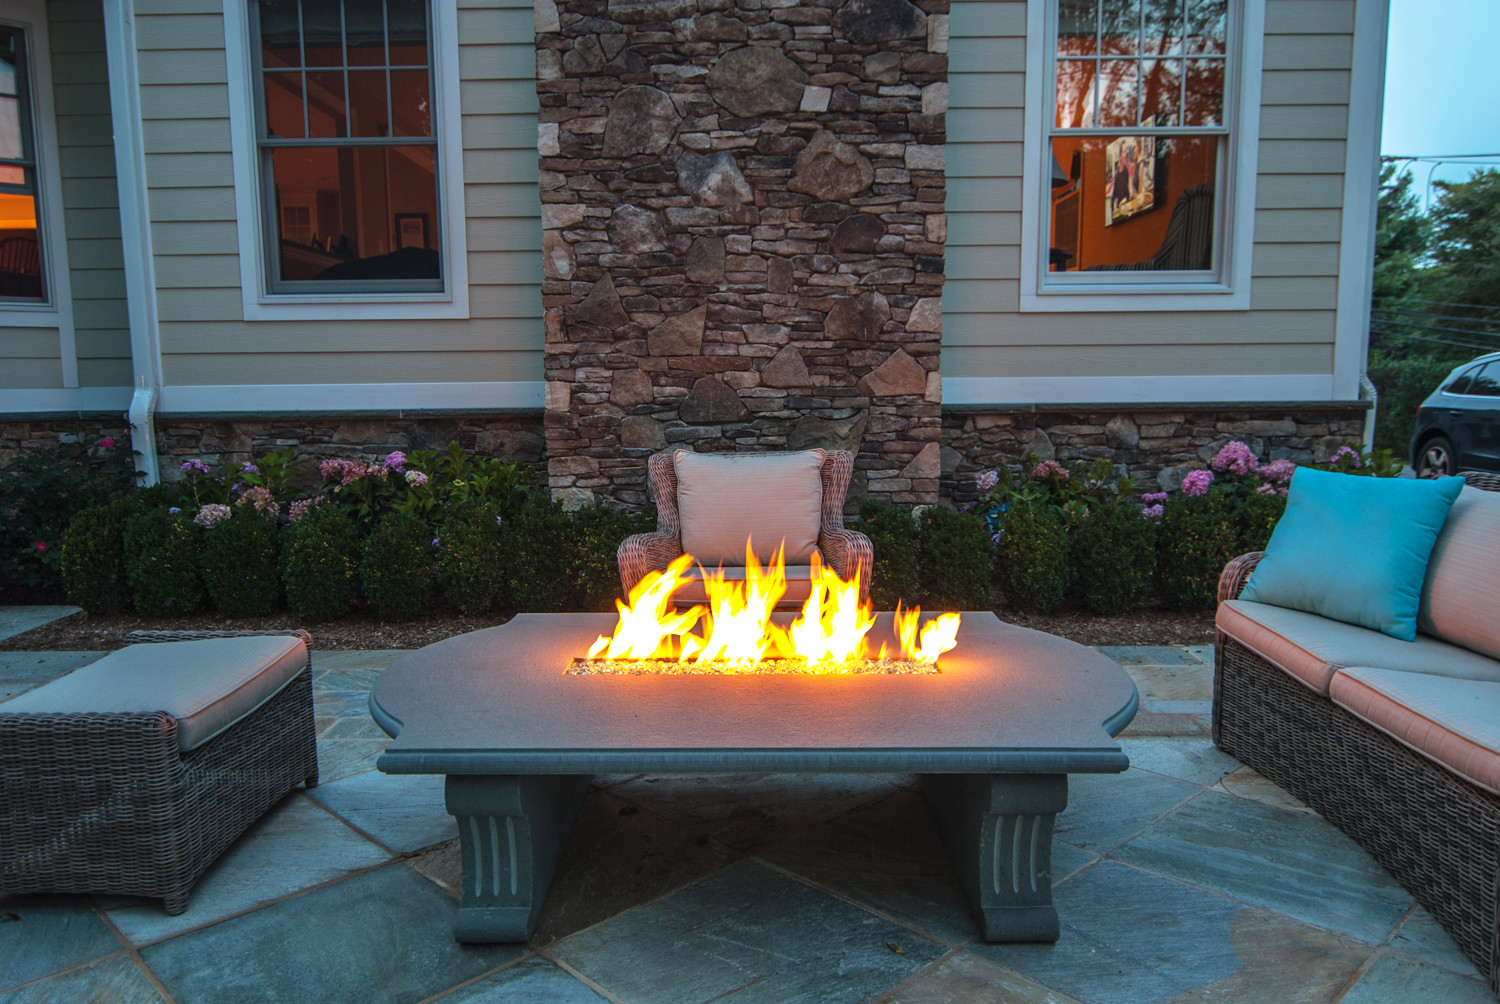 Fireplace Fire Pit  New Outdoor Fire Pit & Fireplace Bergen County NJ